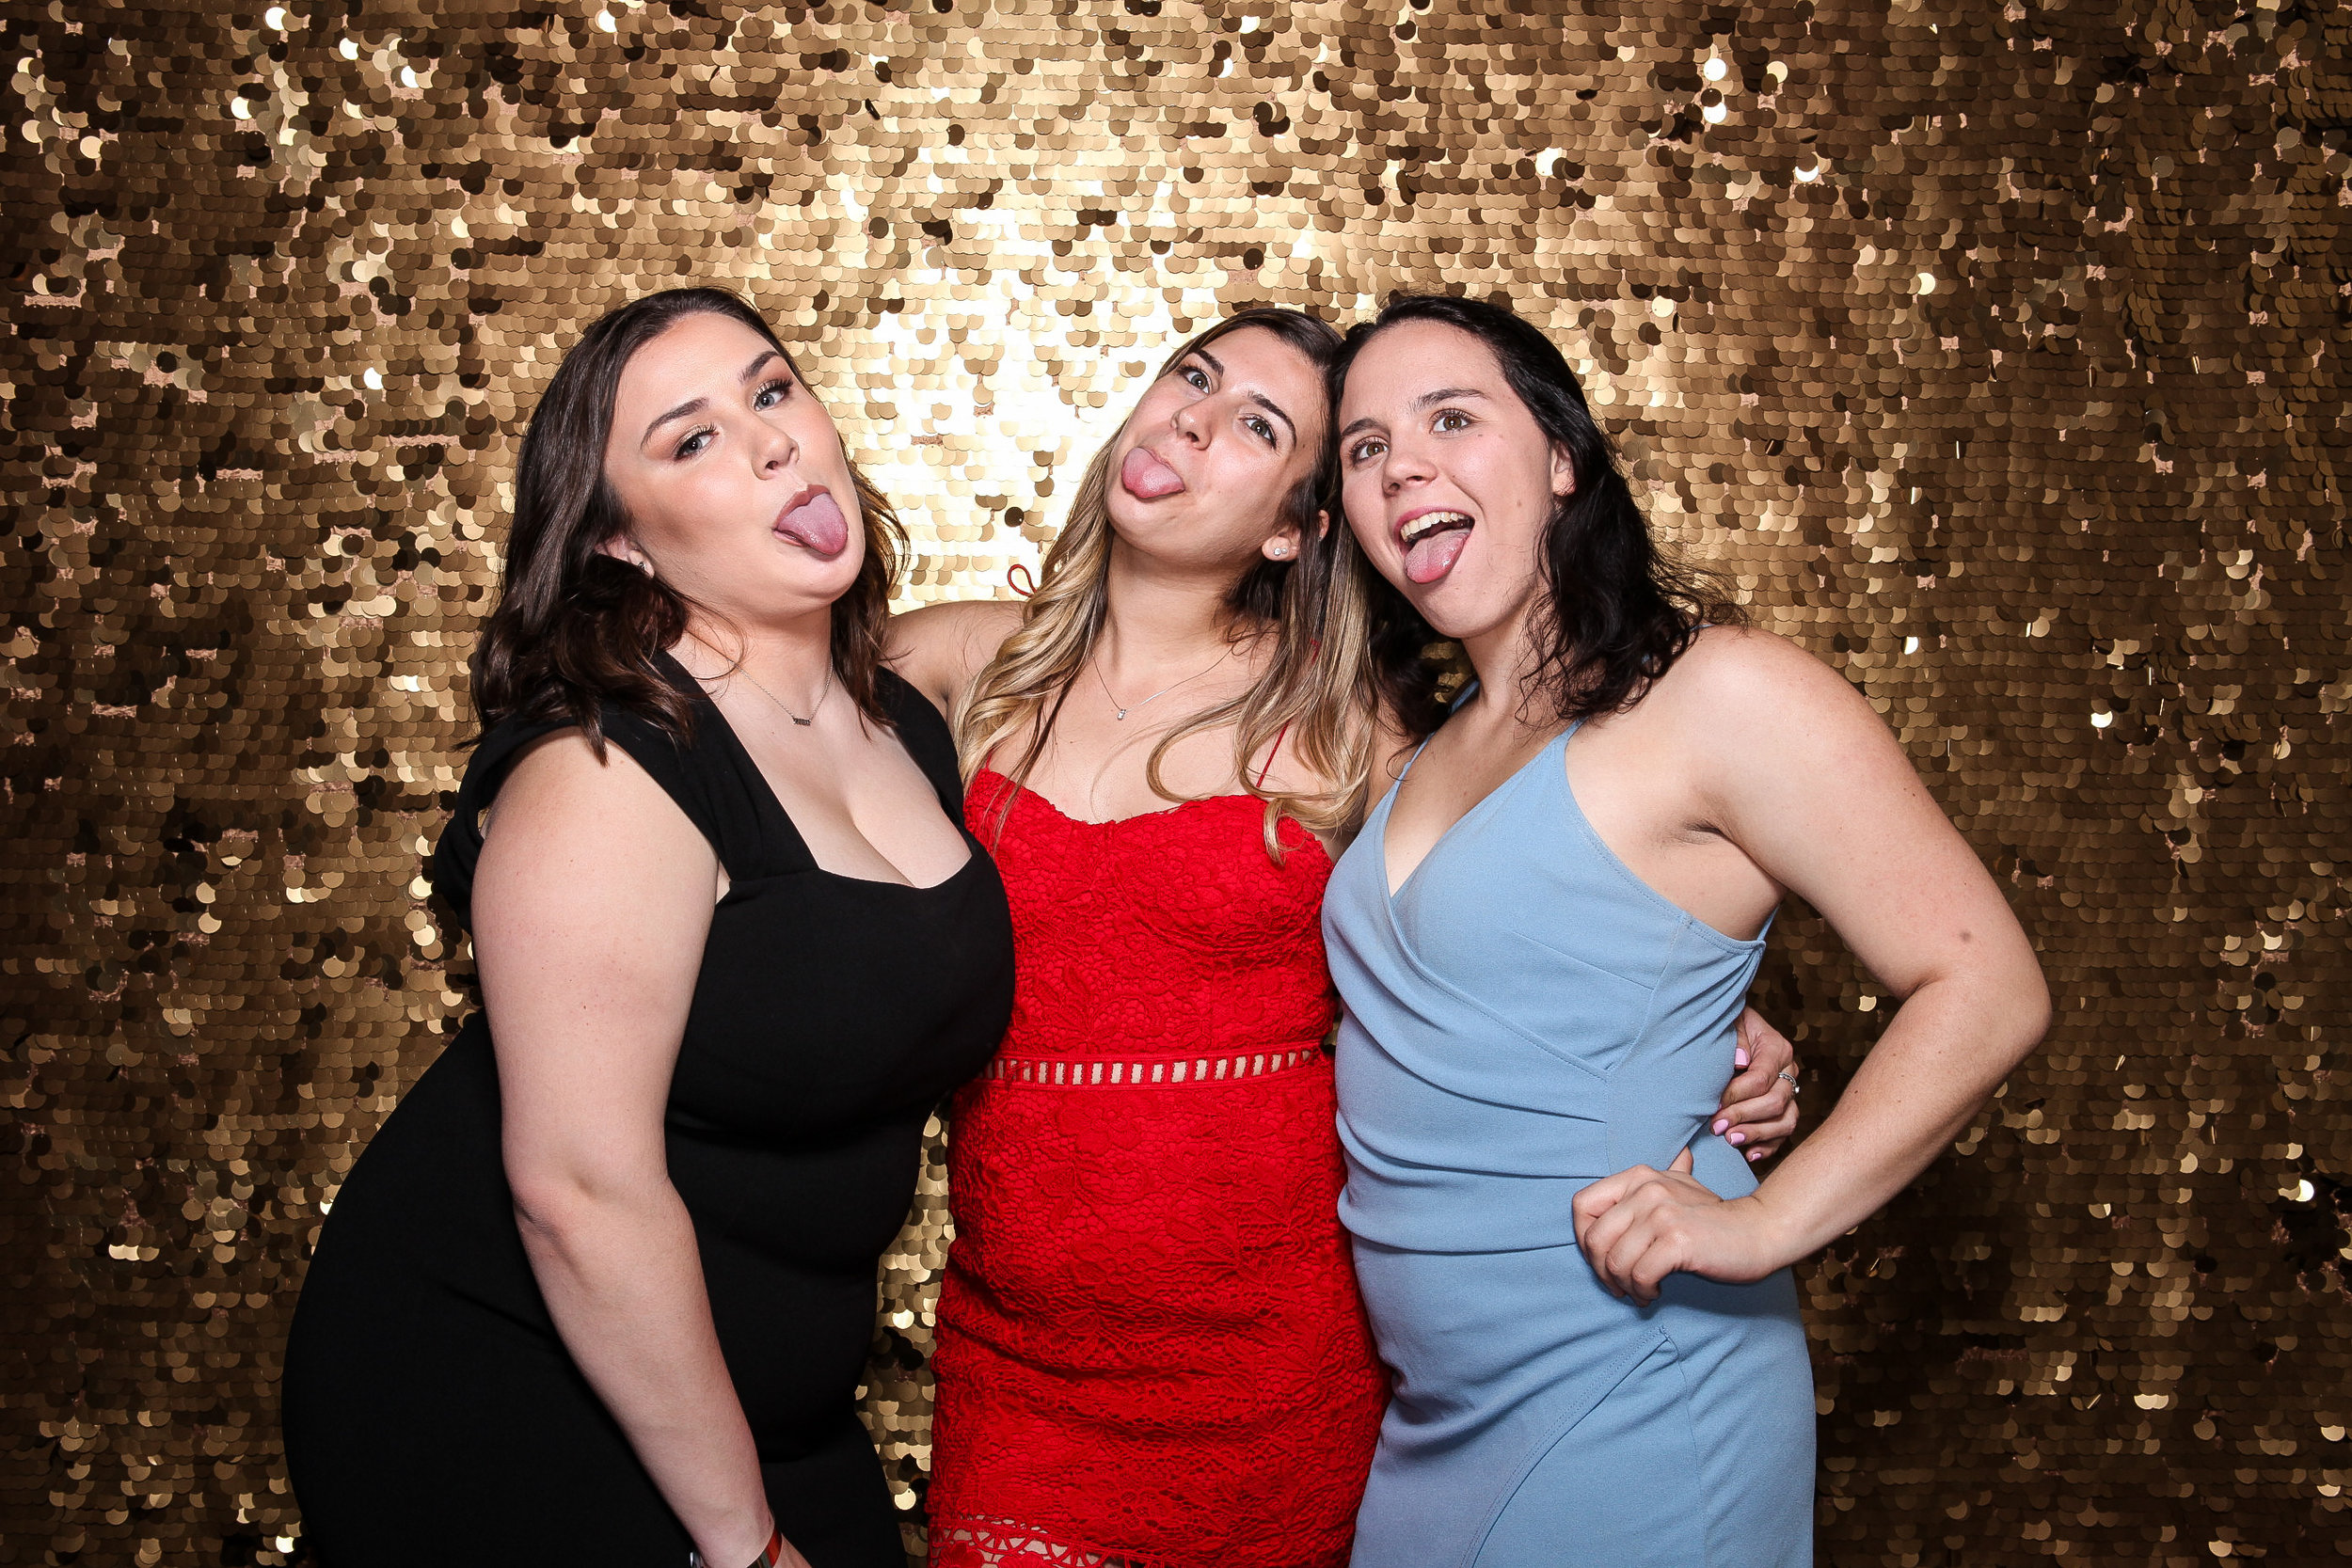 20190503_Adelphi_Senior_Formal-122.jpg